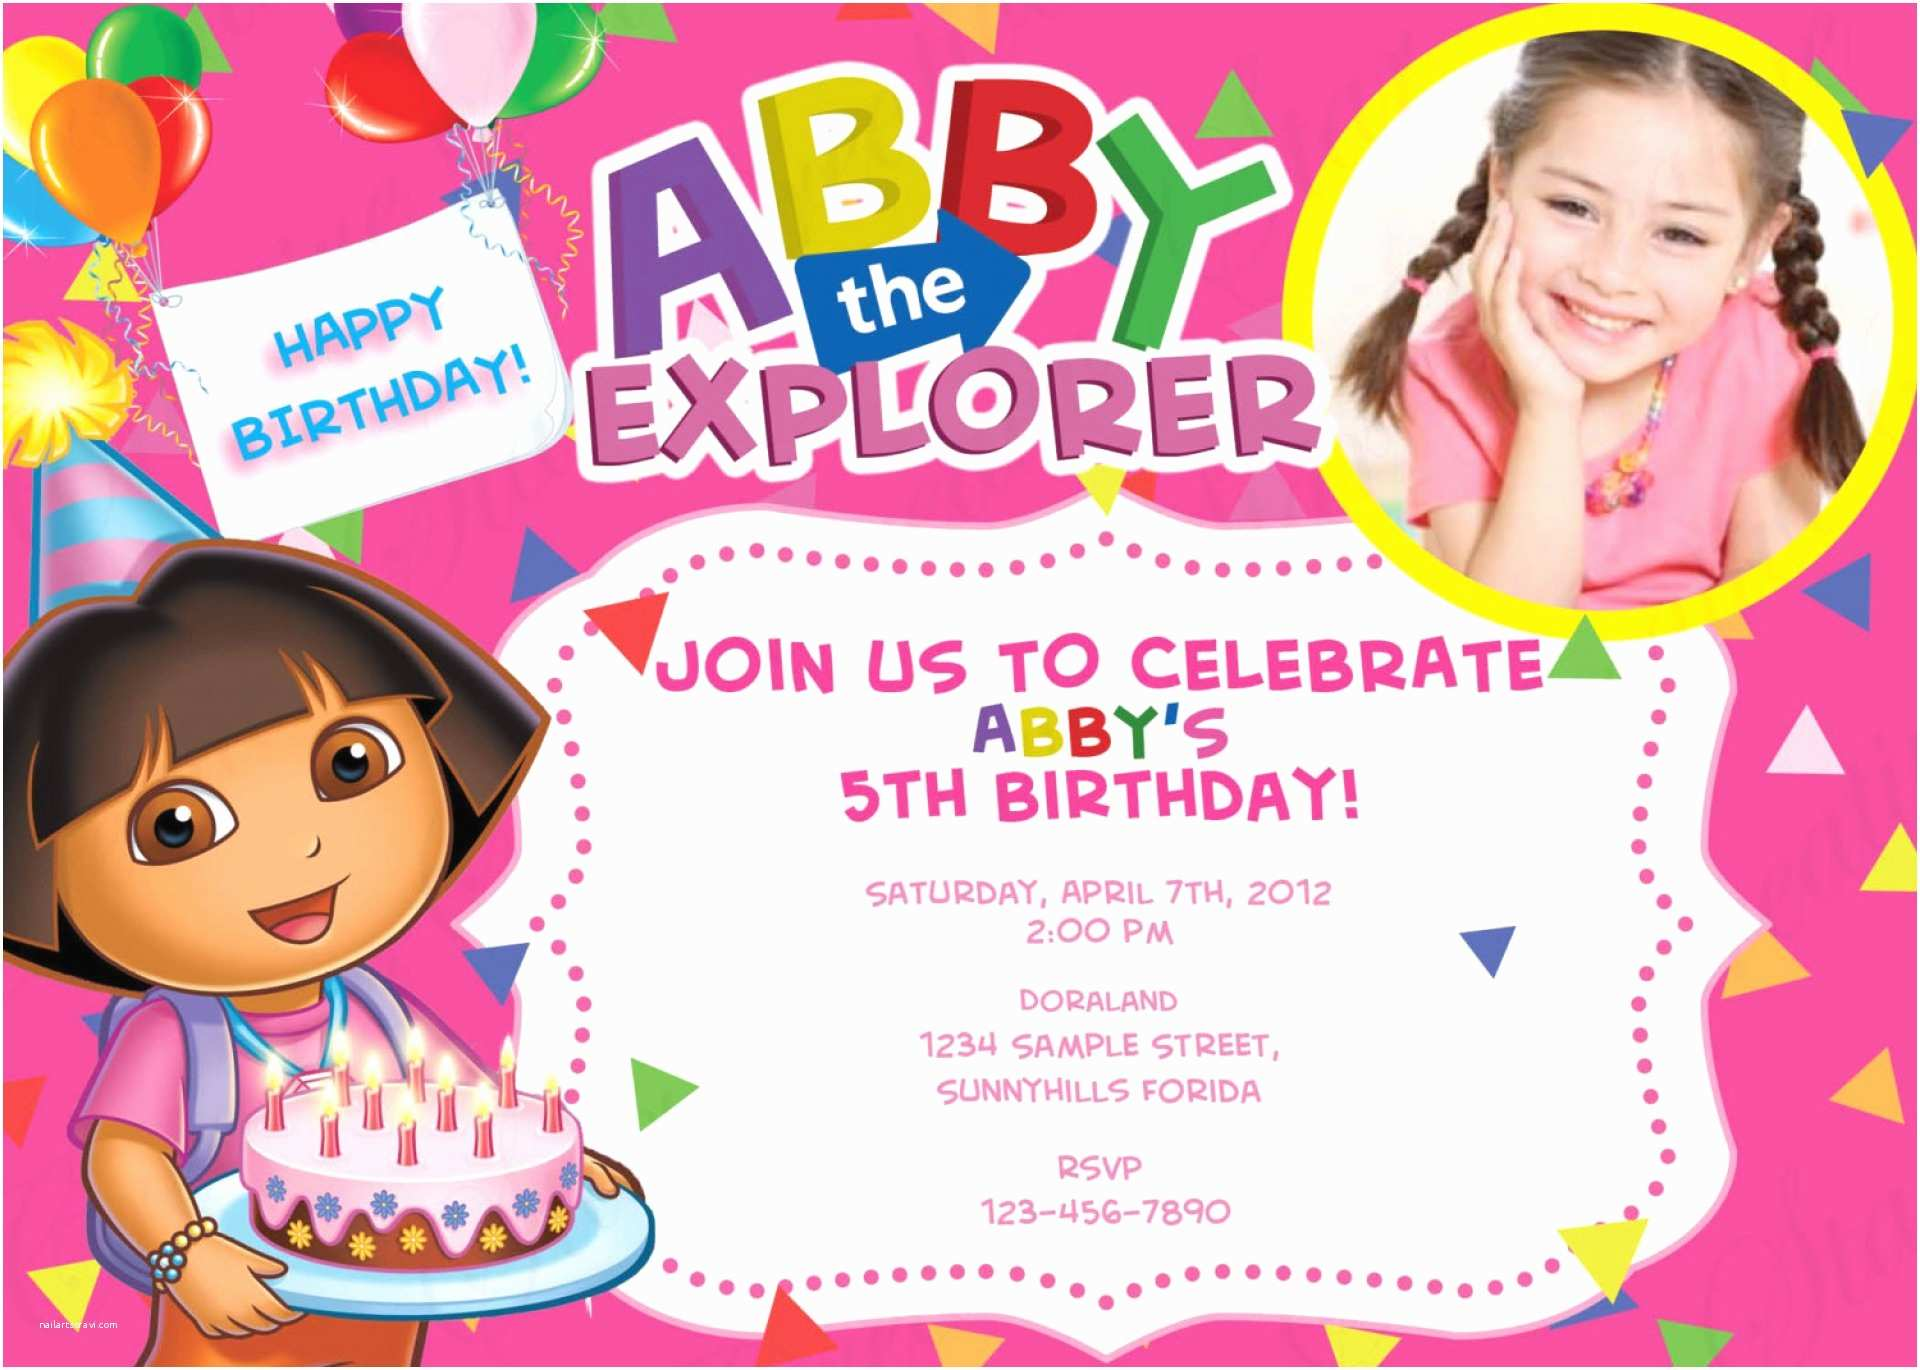 Custom Birthday Invitations Birthday Invitation Card Custom Birthday Invitations